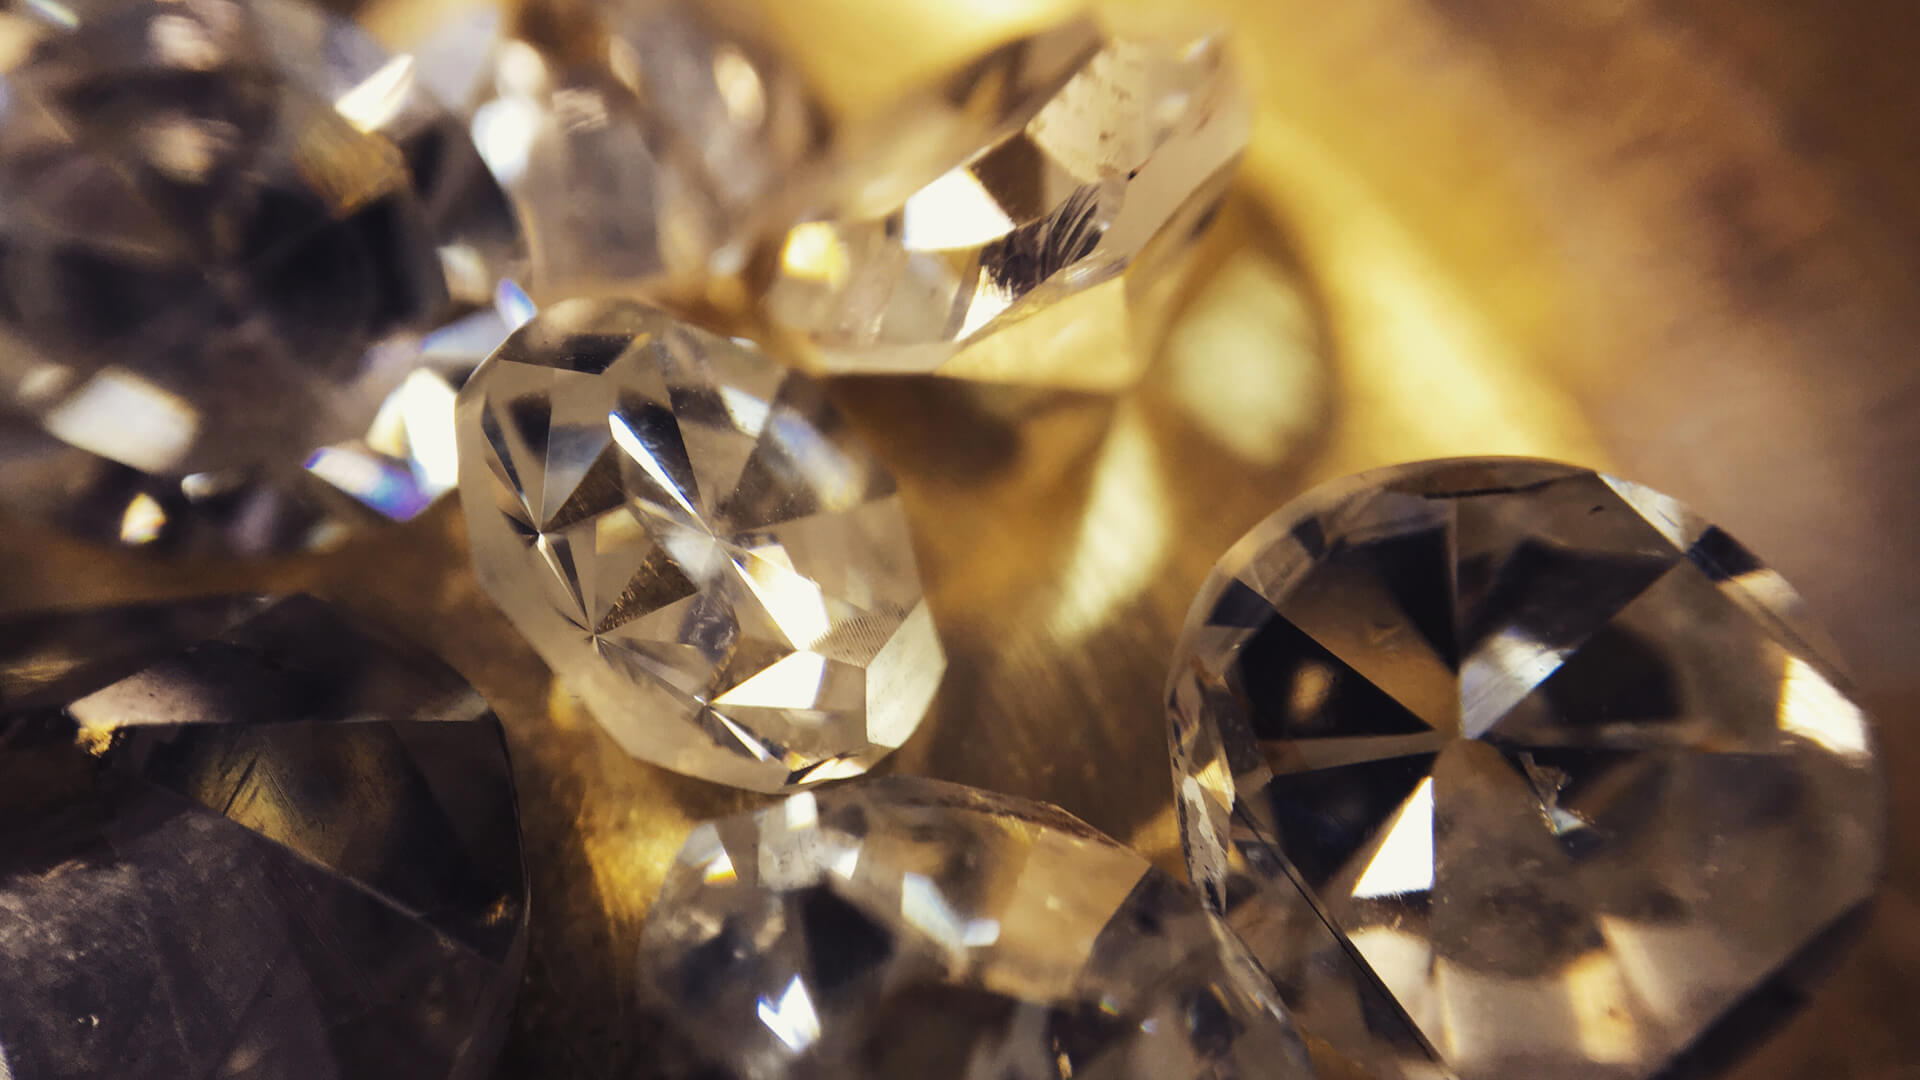 With over 25 years' experience in the diamond industry